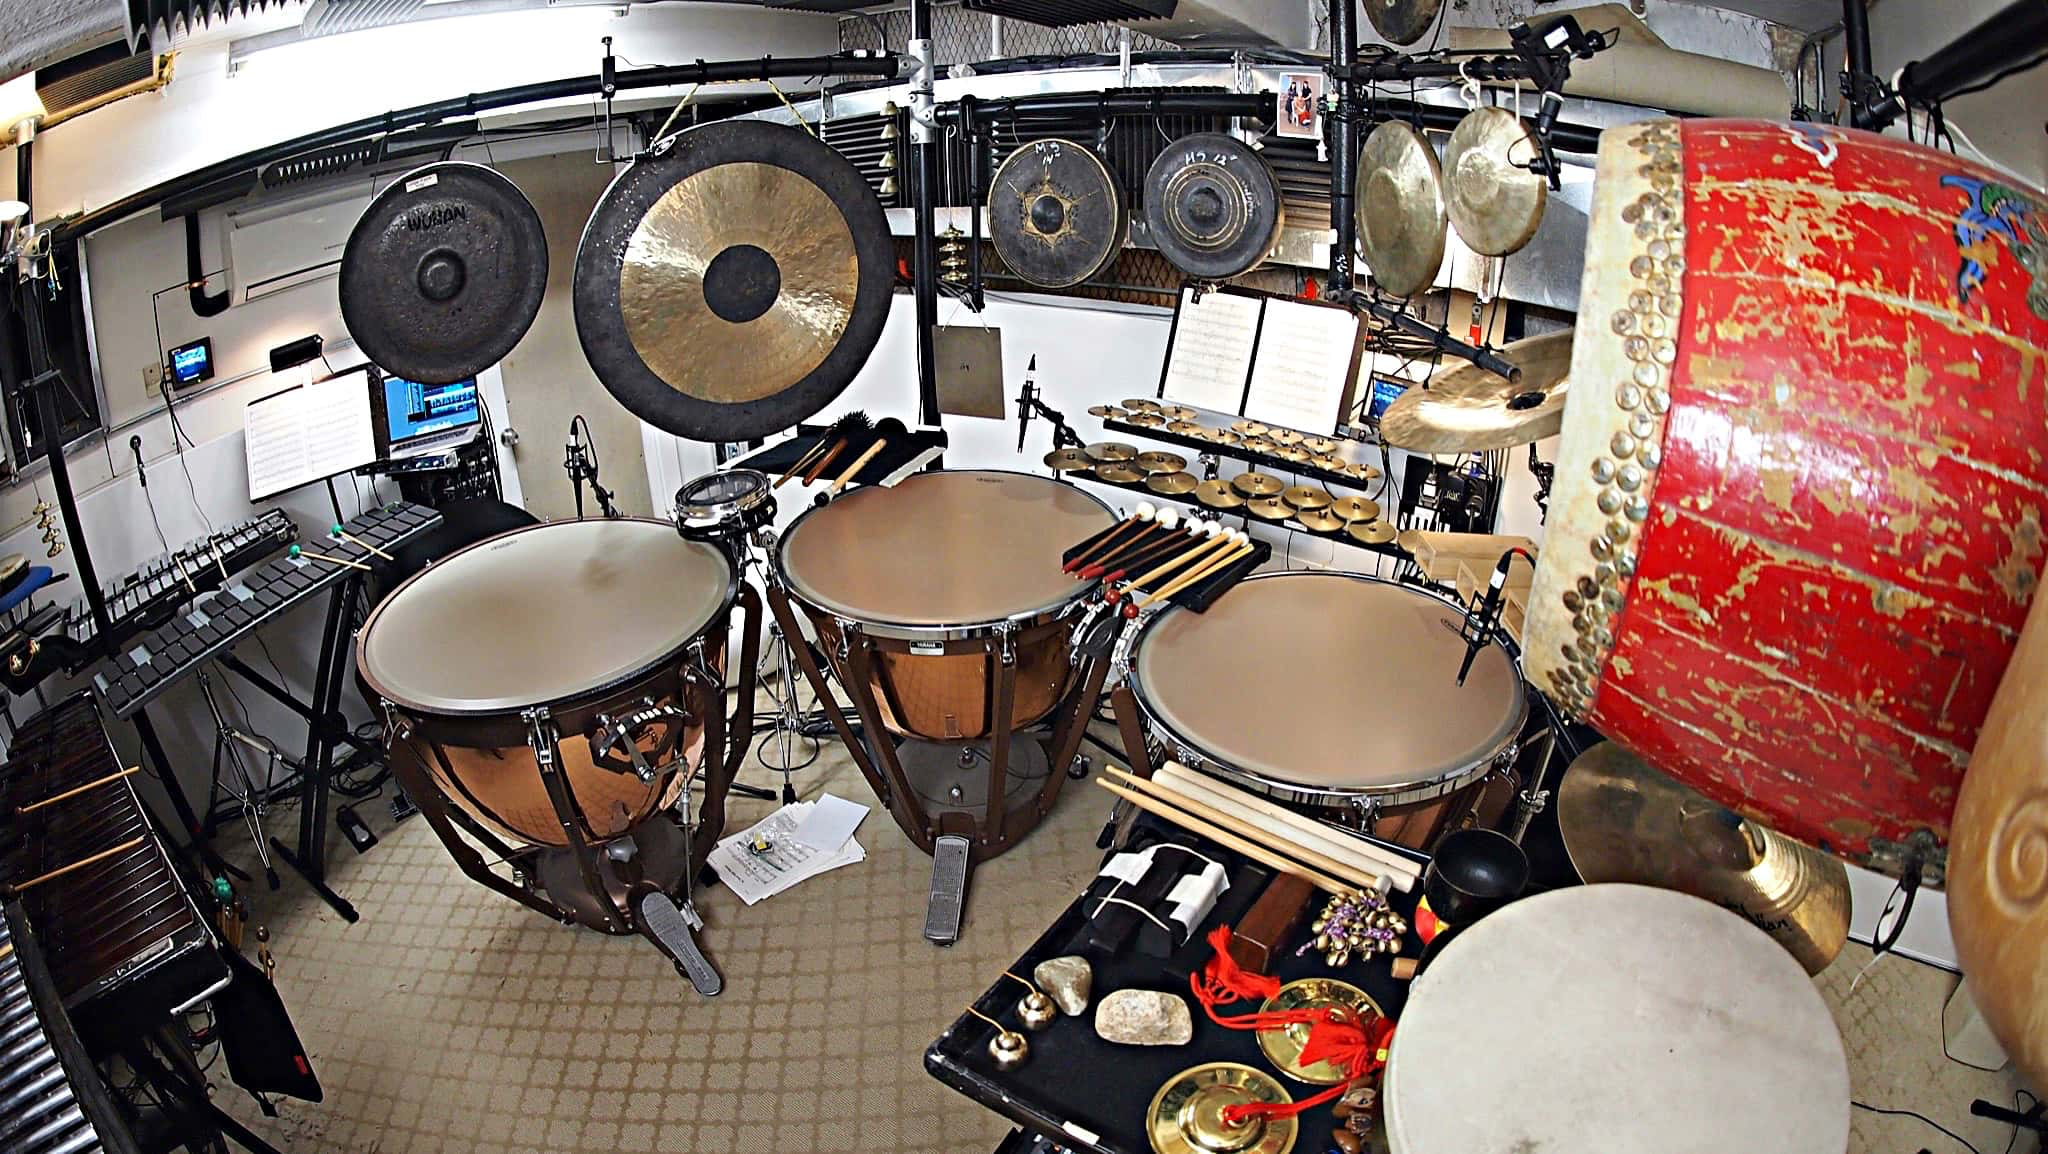 Chihiro Shibayama's percussion setup for the 2017-2018 Broadway revival of Miss Saigon at the Broadway Theatre.